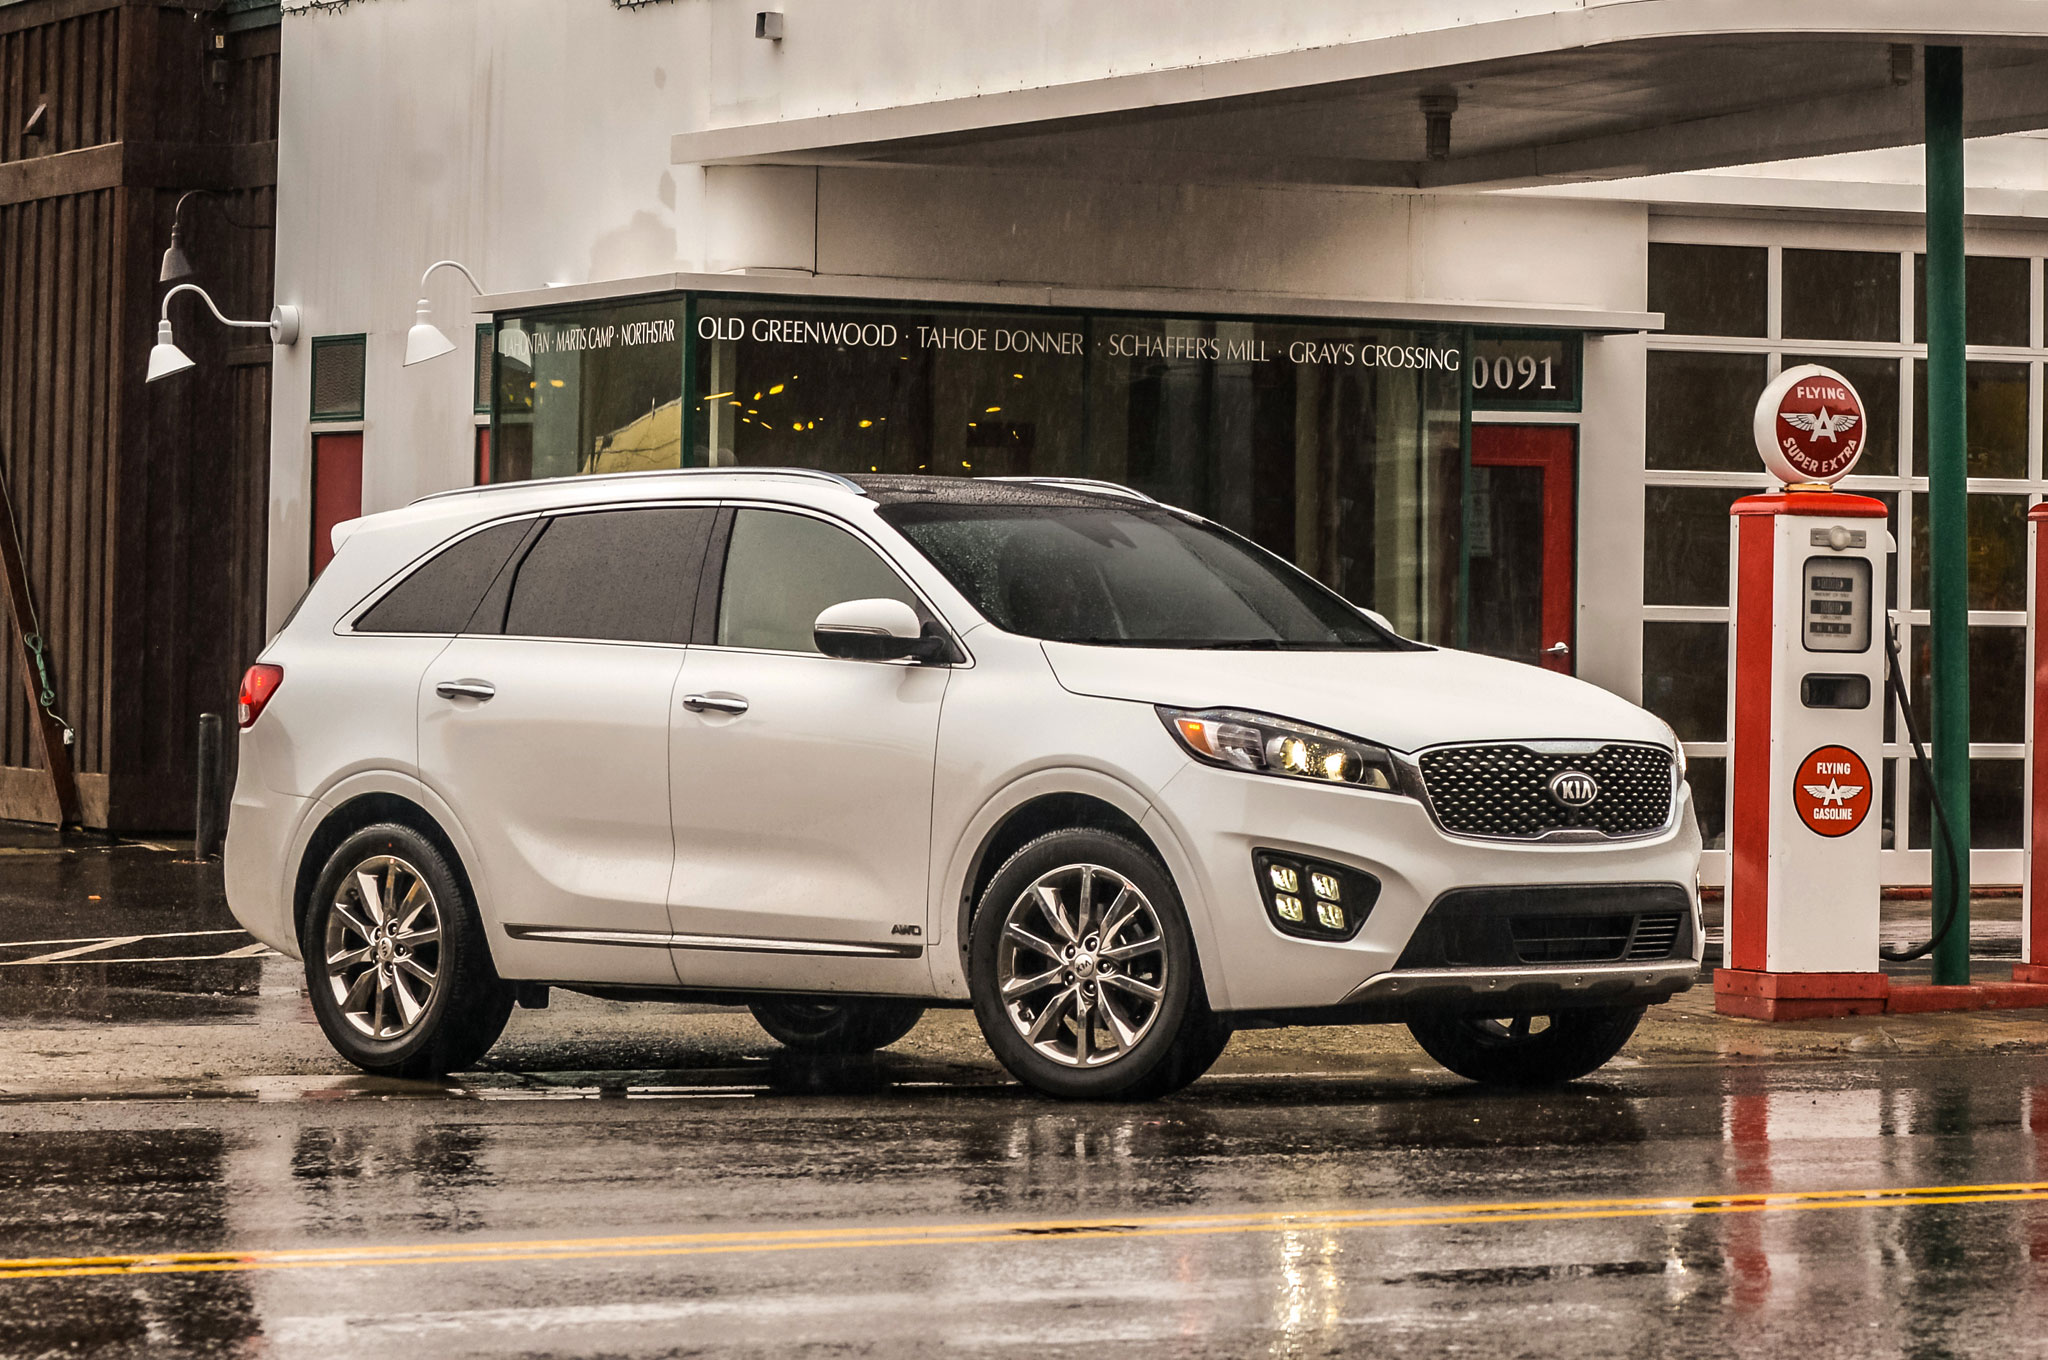 2017 kia sorento receives active safety features android auto and carplay capability. Black Bedroom Furniture Sets. Home Design Ideas